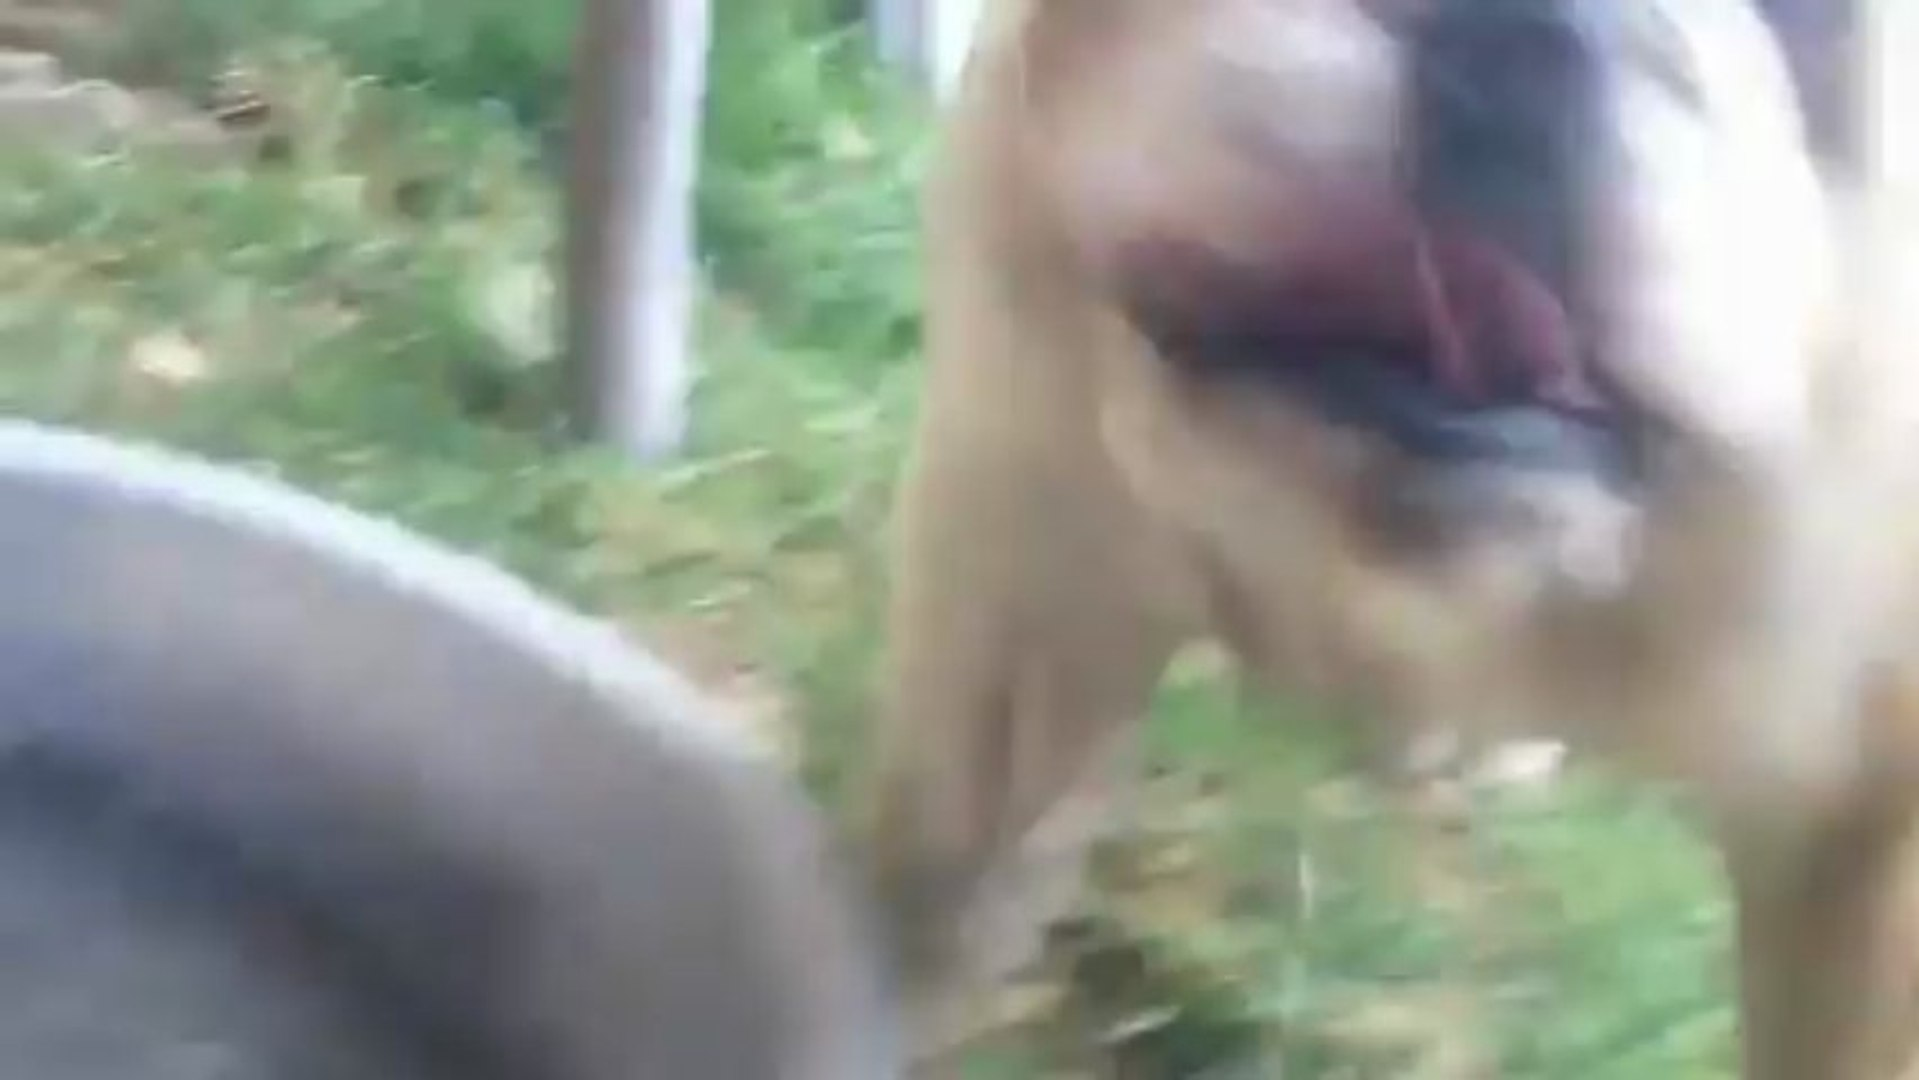 XXX English Bull Dog -playing and then attack me-